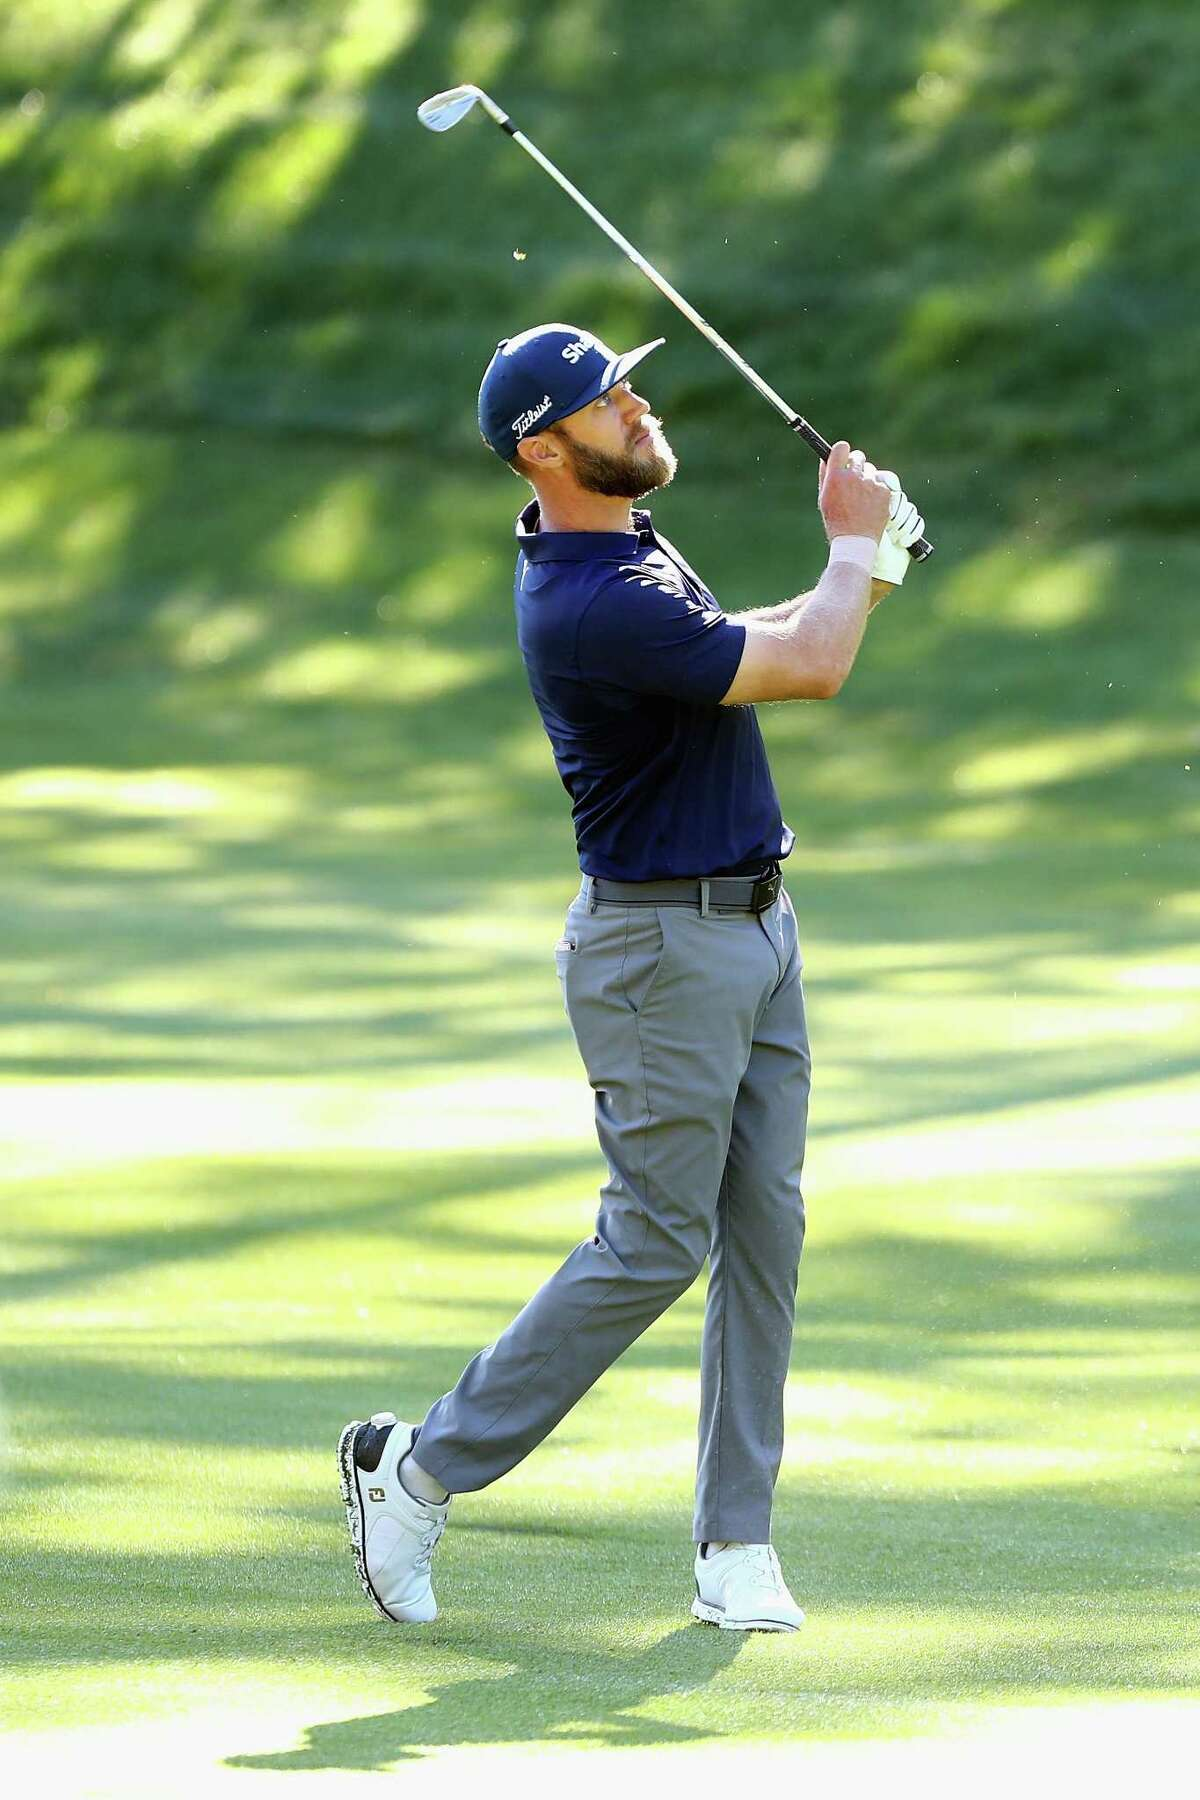 Graham DeLaet plays a shot on the 14th hole during the first round of the Travelers Championship on Thursday in Cromwell.